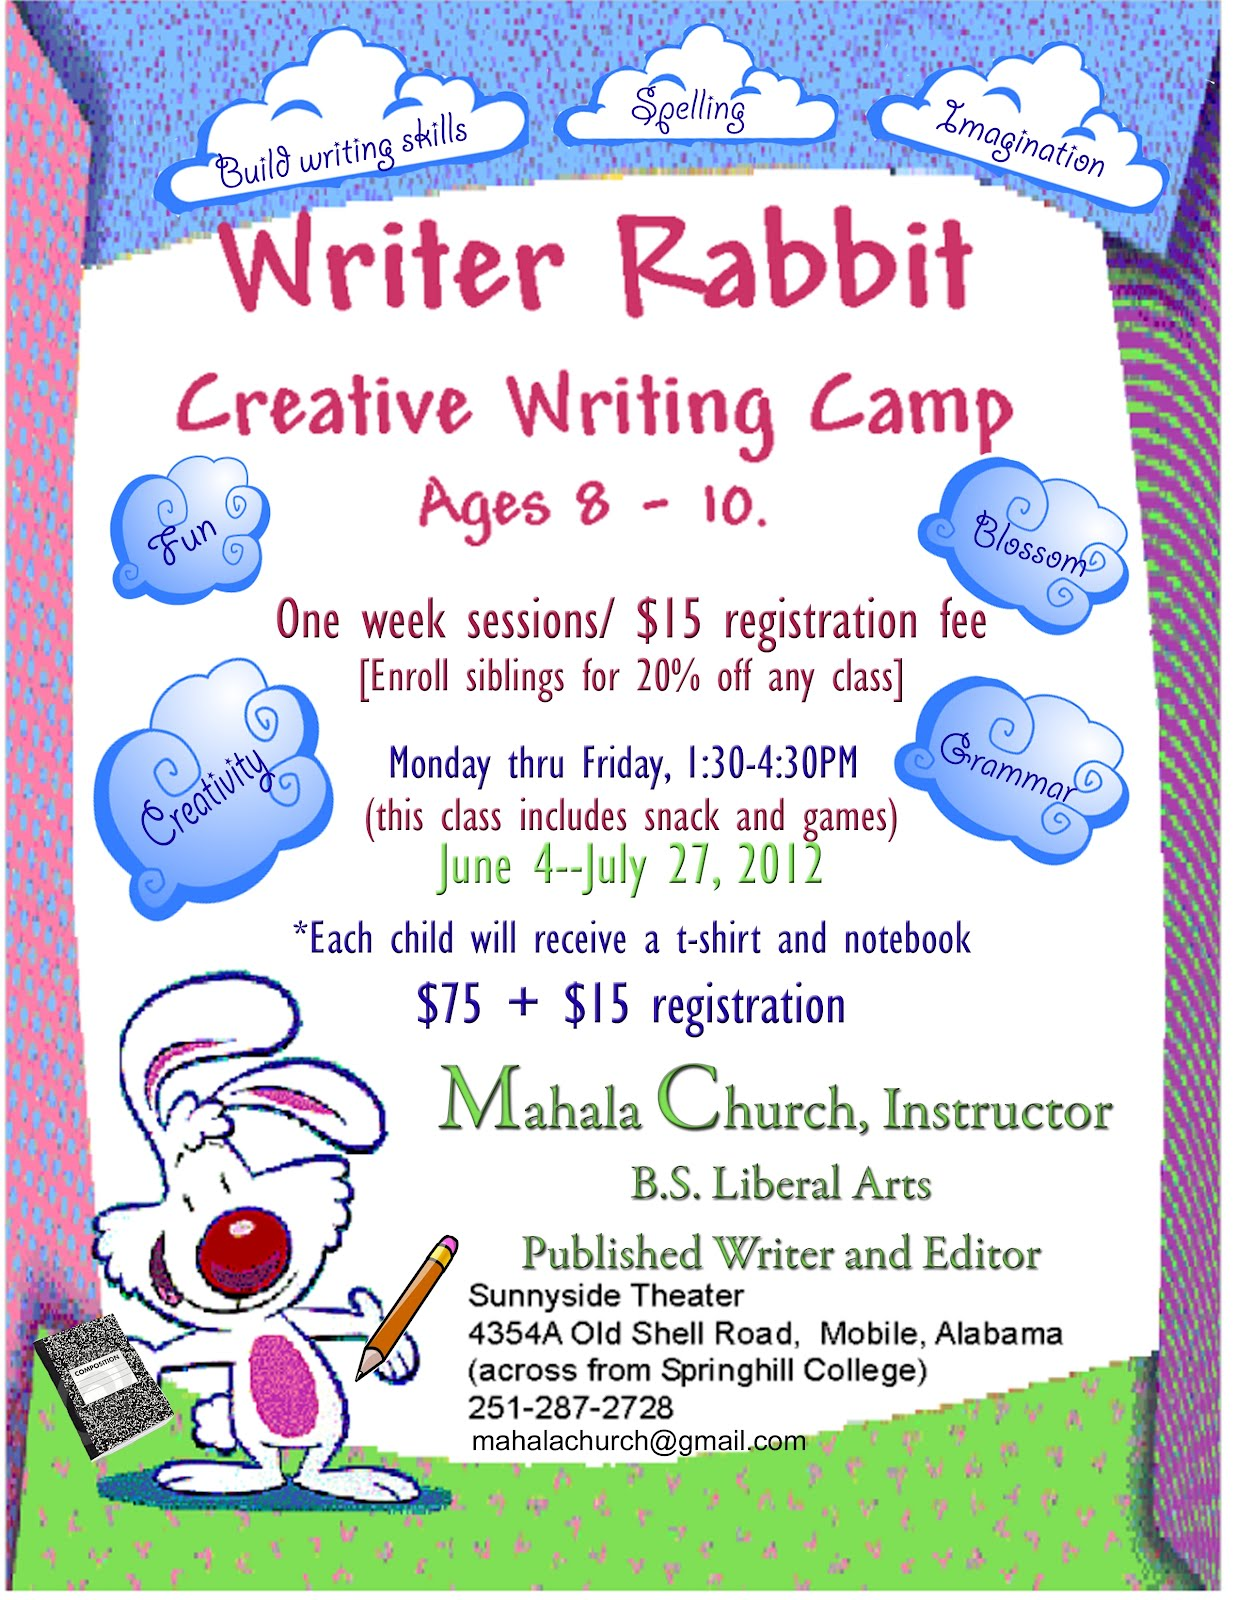 Importance of creative writing for students